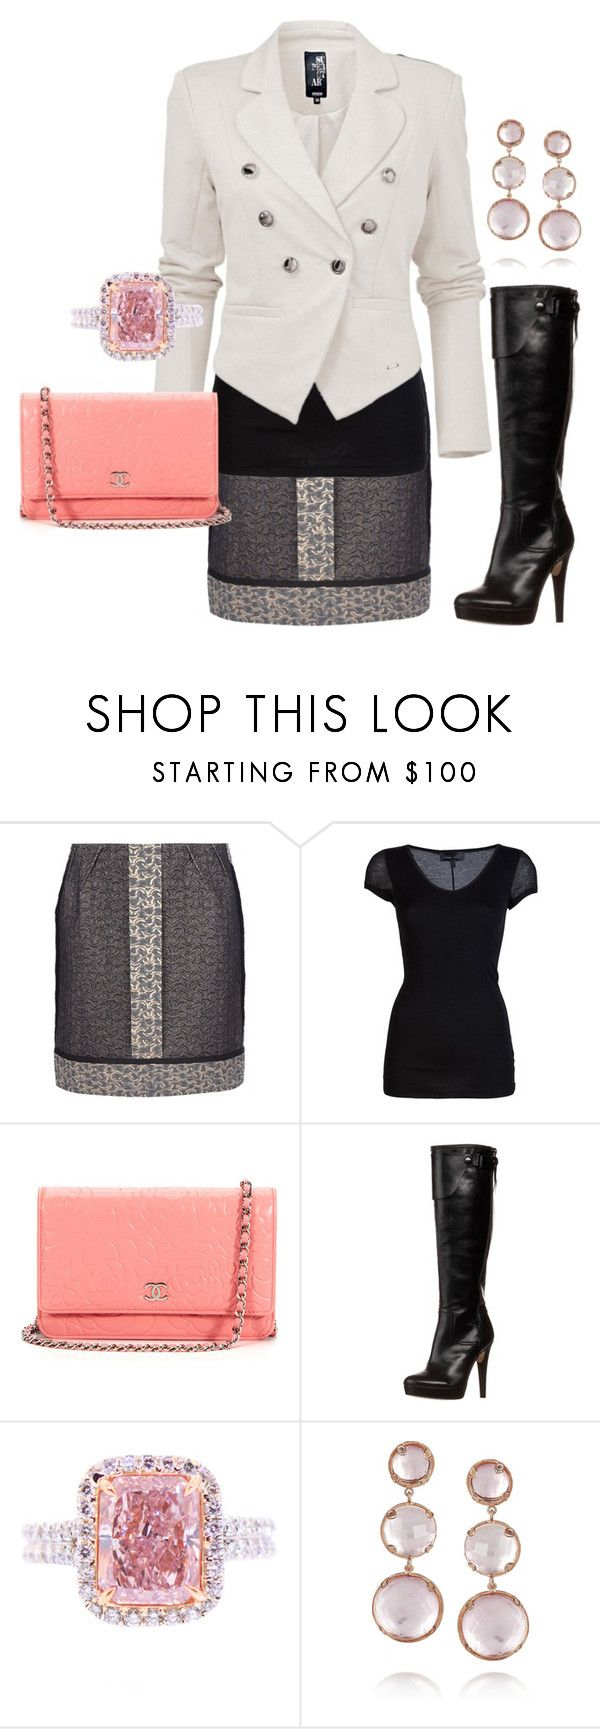 """Untitled #126"" by chloe-604 ❤ liked on Polyvore featuring Lanvin, Diesel Black Gold, Chanel, Mai Piu Senza and Larkspur & Hawk"